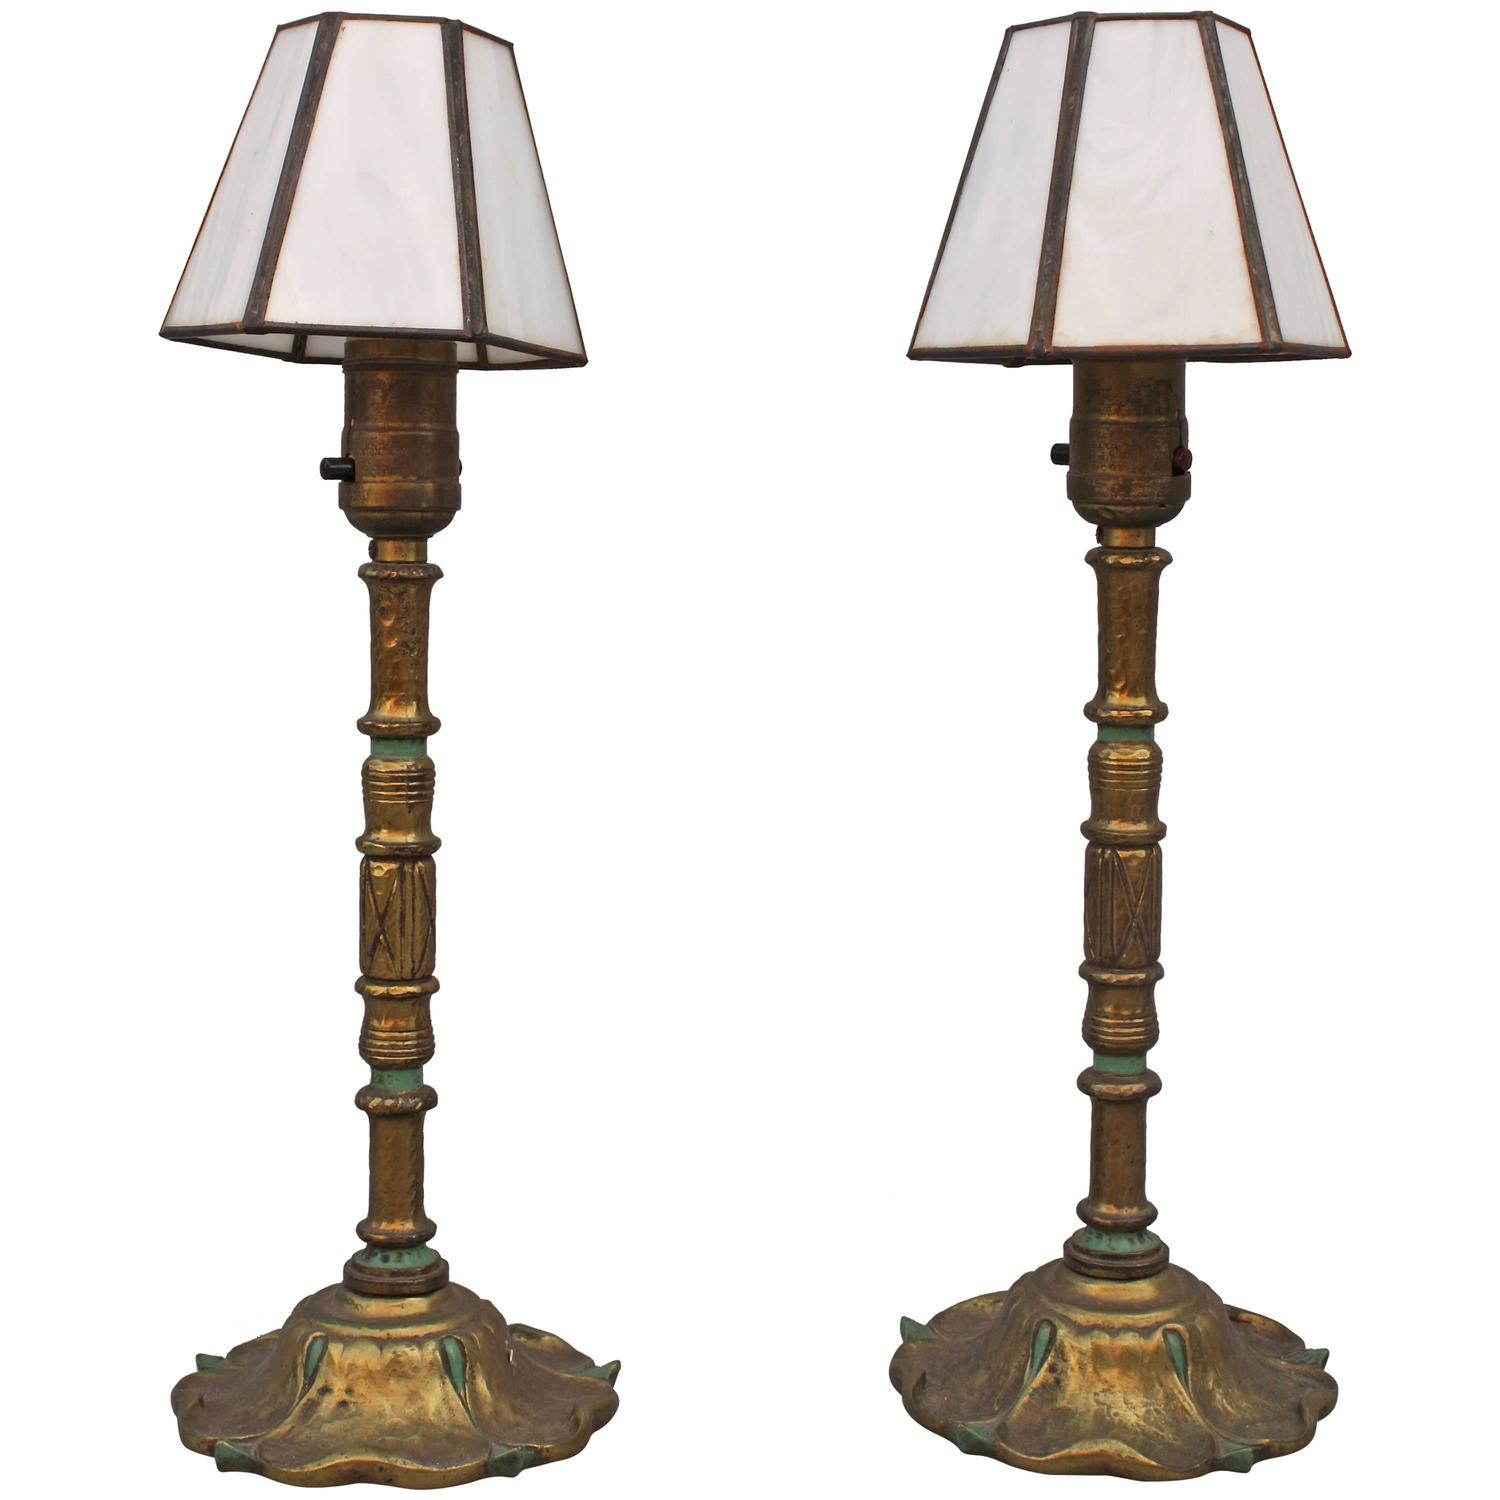 Table Lamp Shades Small Best Inspiration For Table Lamp